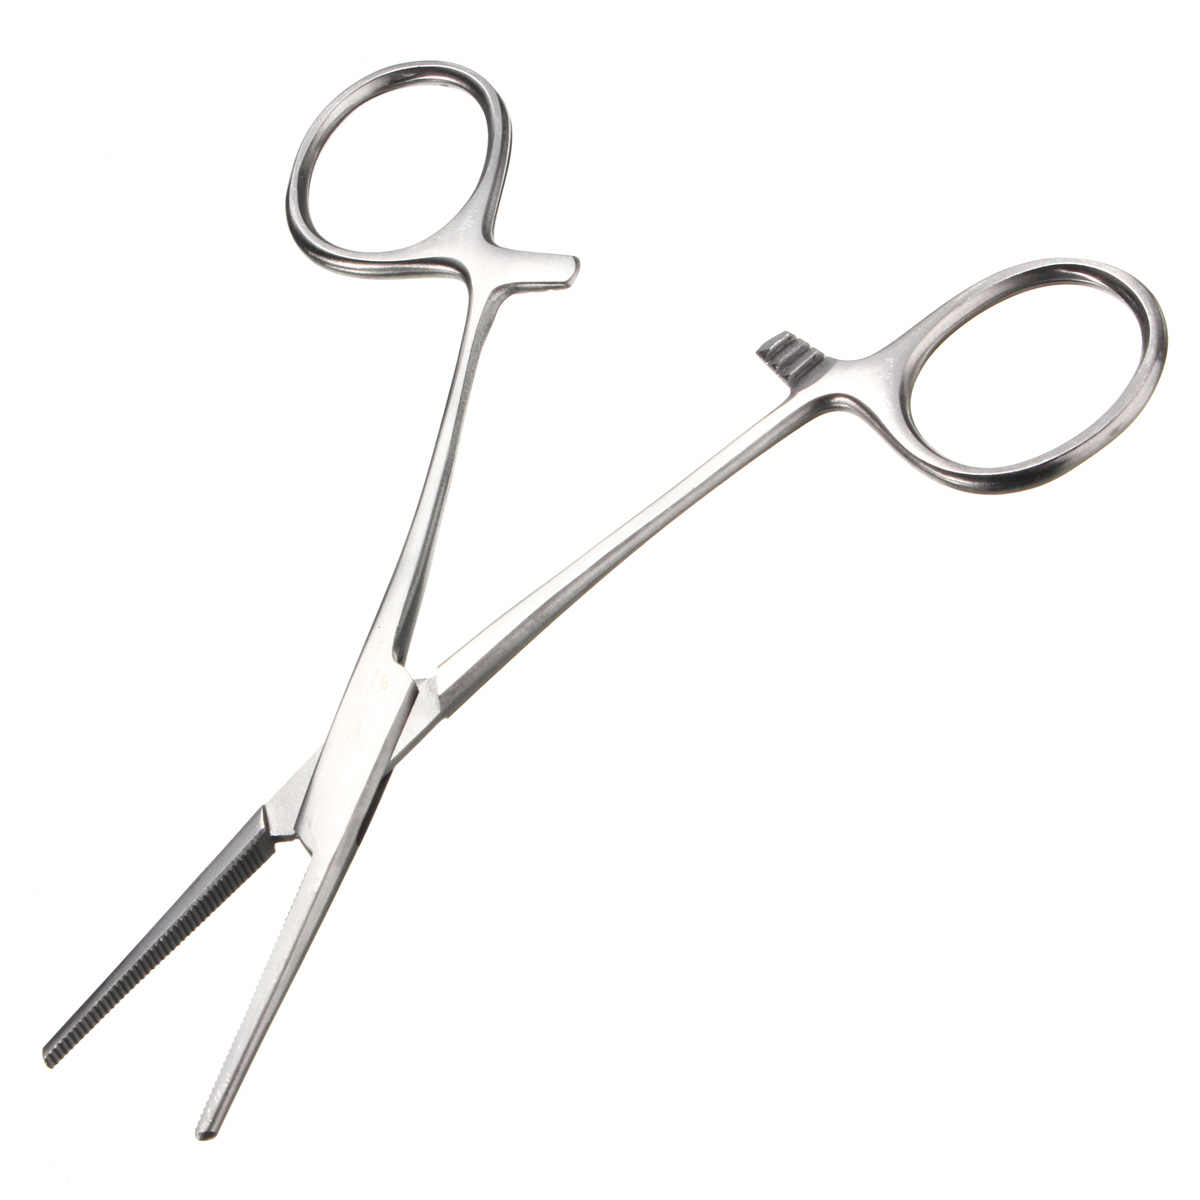 1pcs Dental Orthodontic Ligature Wire Orthopedic Instrument Stainless Steel Straight Tips Hemostat Forcep Locking Clamps Plier